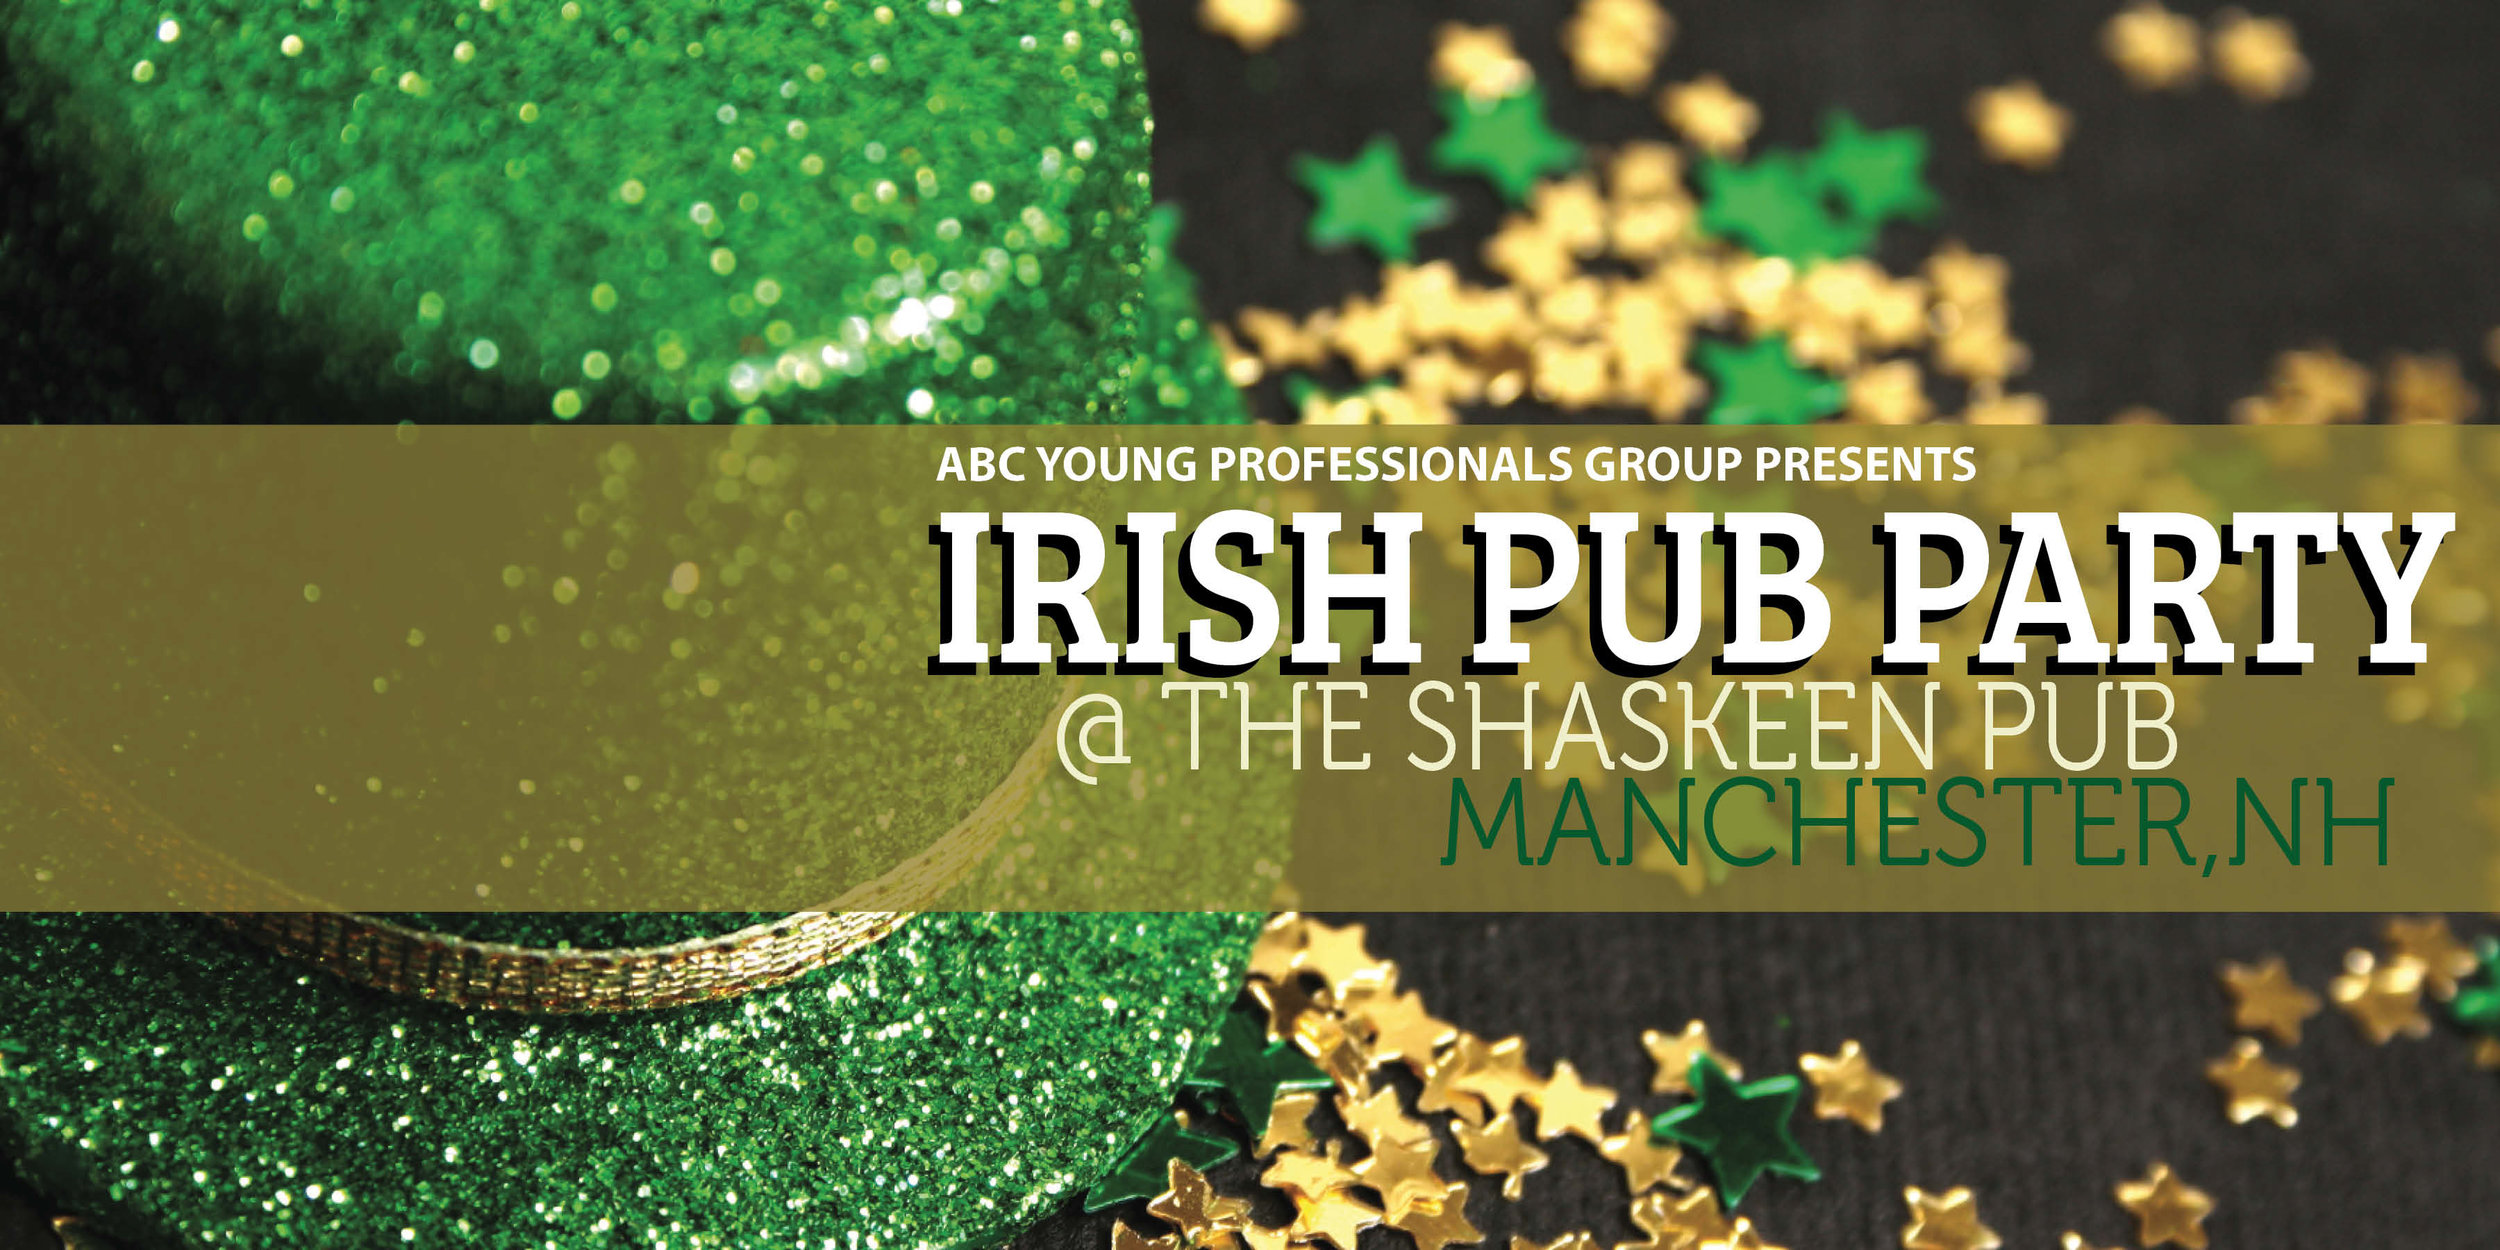 2018 Irish Pub Party Squarespace Cover.jpg